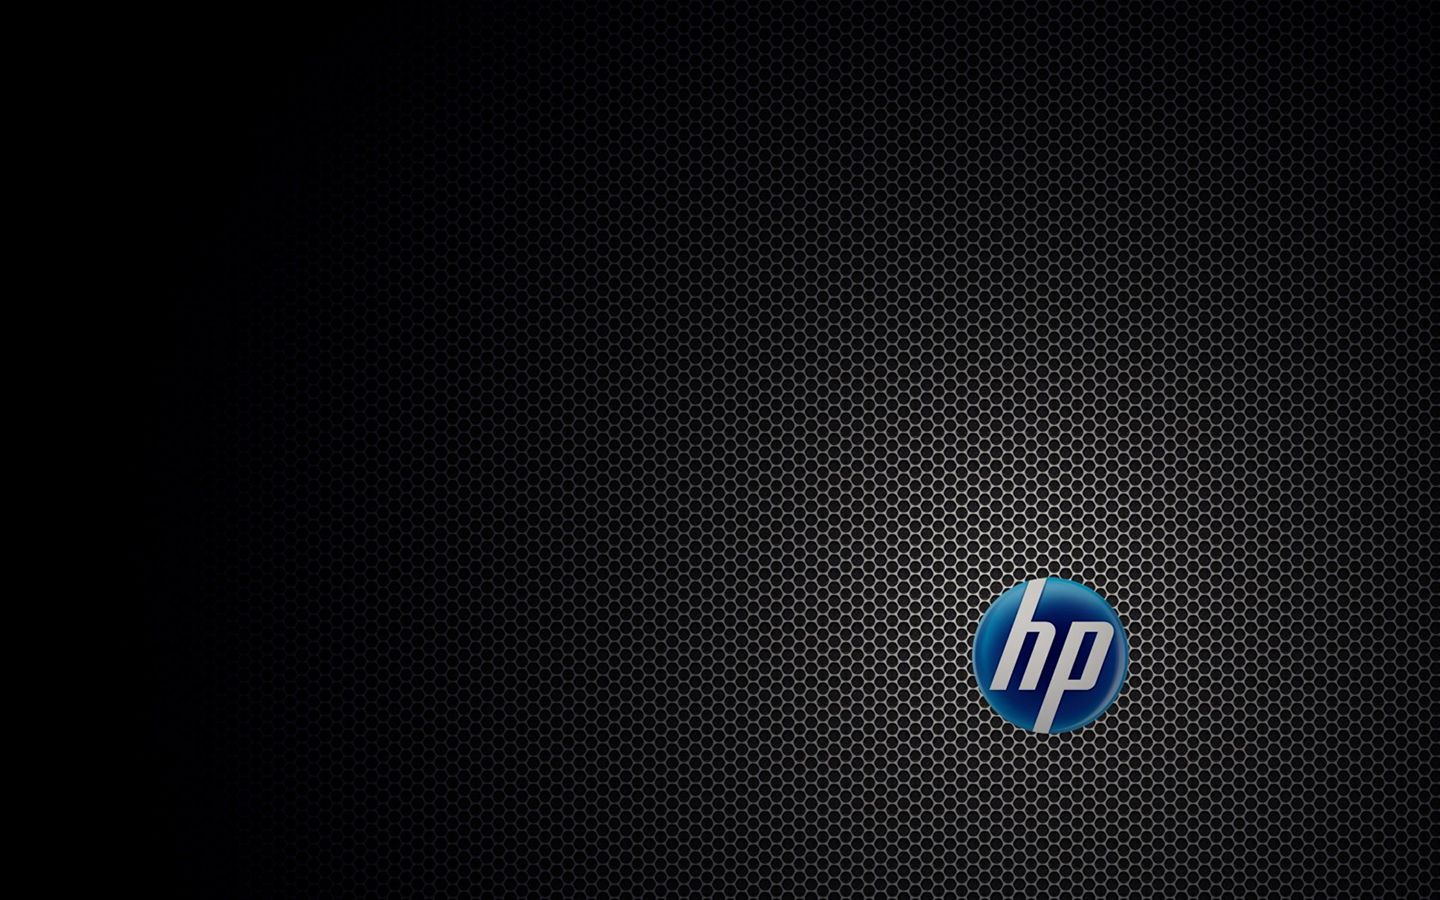 Hd Logo Wallpapers Page 1920 1080 Hd Logo Wallpapers 50 Wallpapers Adorable Wallpapers Hd Wallpapers For Laptop Desktop Wallpaper Laptop Wallpaper